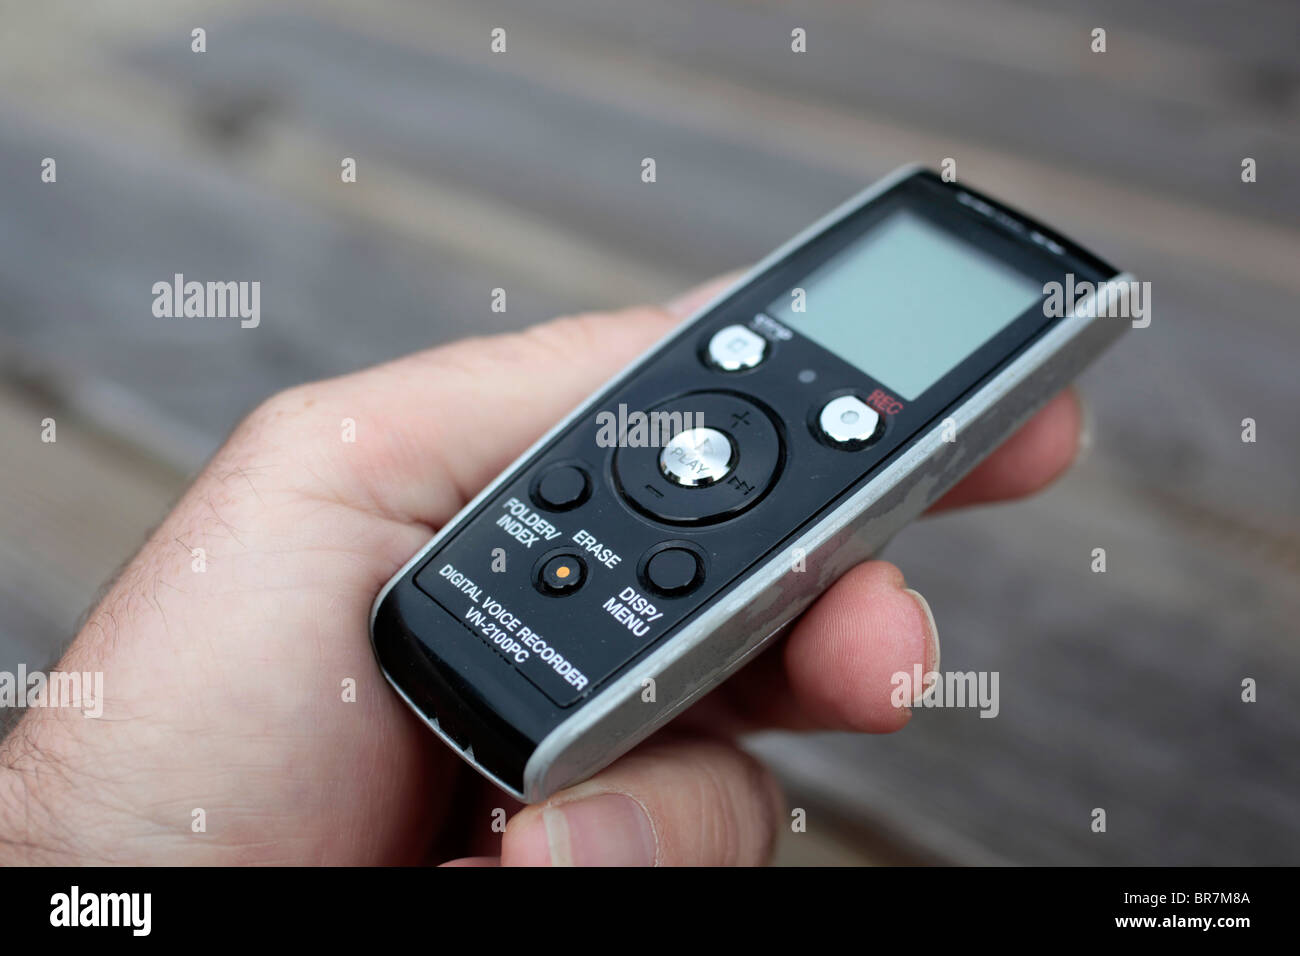 Digital Voice Recorder - Stock Image